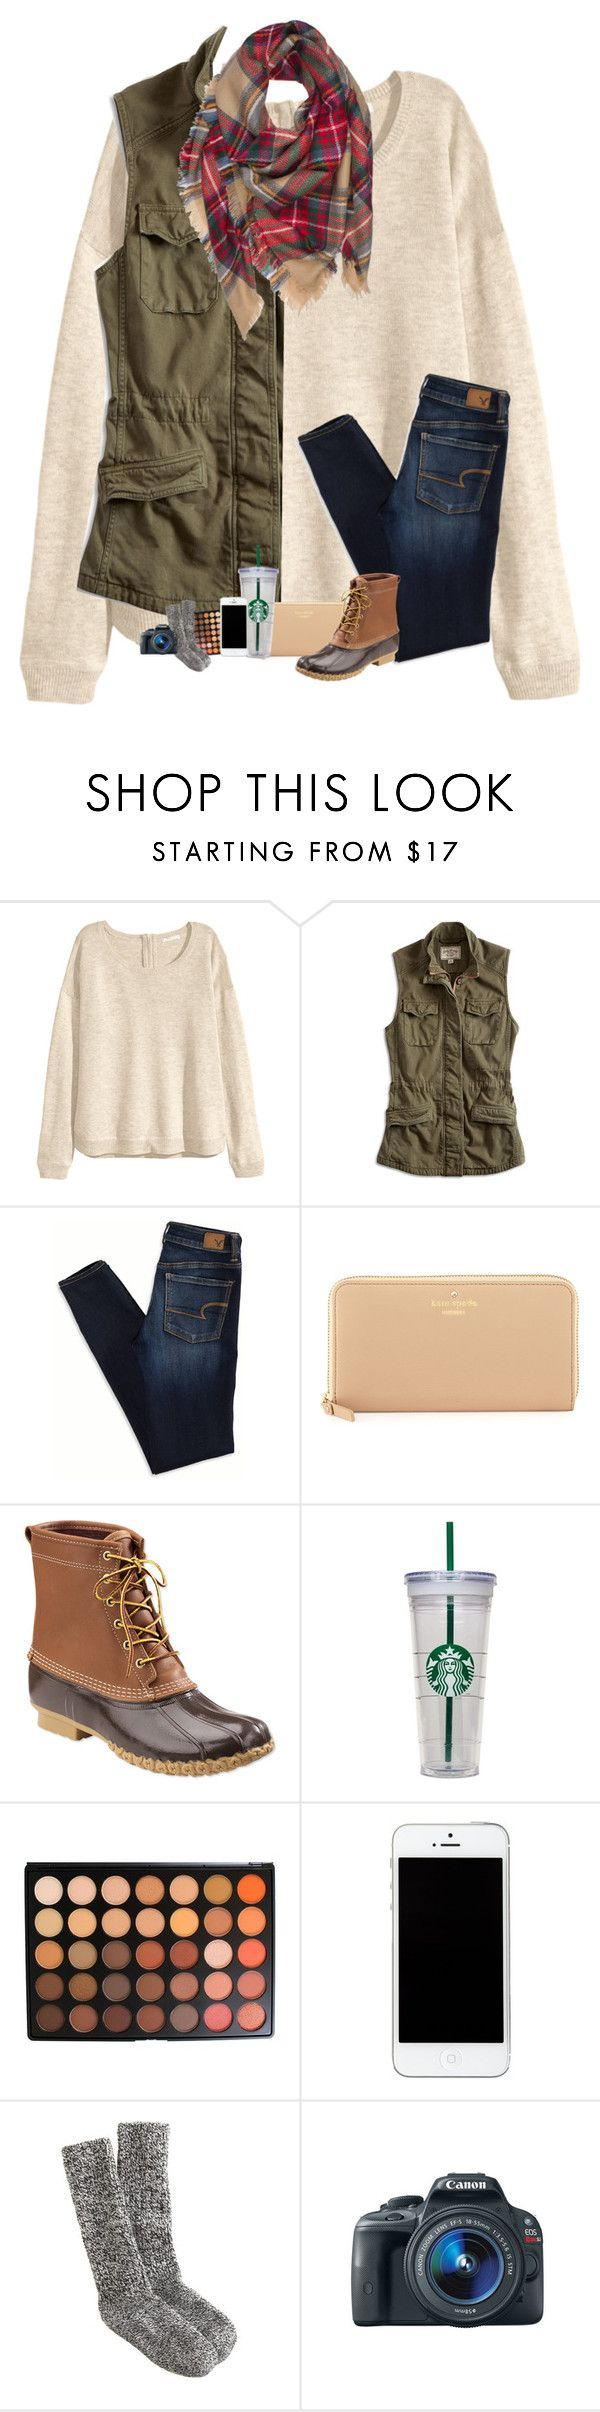 """""""Bean boots contest :-)"""" by sanddollars ❤ liked on Polyvore featuring H&M, Lucky Brand, American Eagle Outfitters, Kate Spade, L.L.Bean, WALL, Morphe, J.Crew and Eos"""